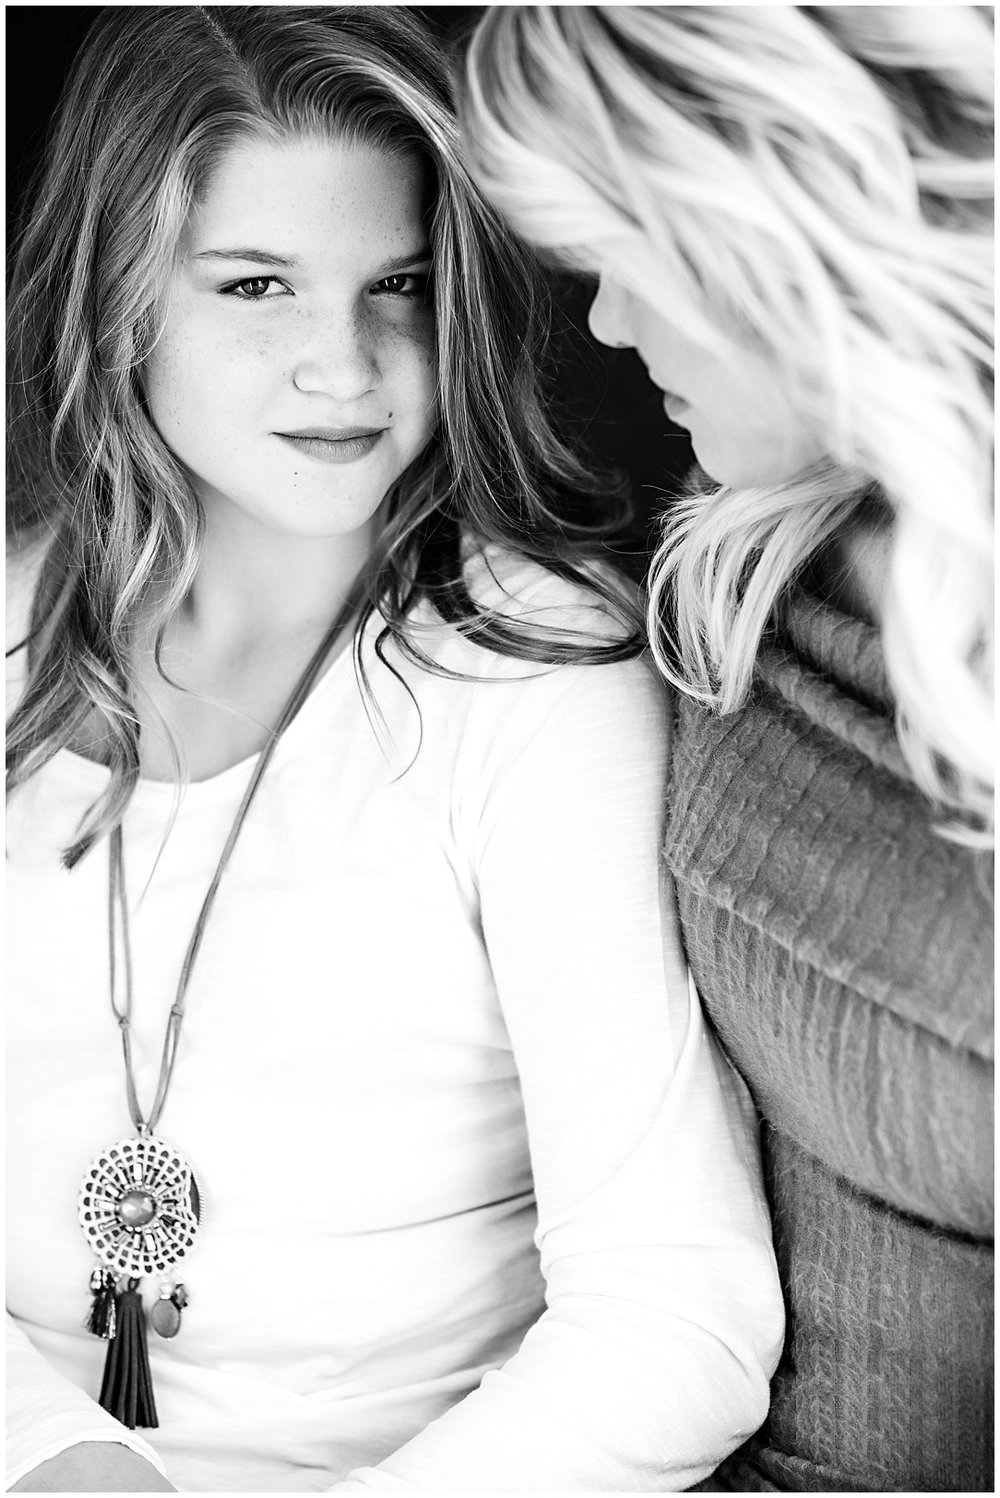 Tessa_marie_photography_family_portrait_photographer_mother_daughter_family_sessions_timeless_elegance_Vogue_magazine_style_portraits_contemporary_portraits_0095.jpg